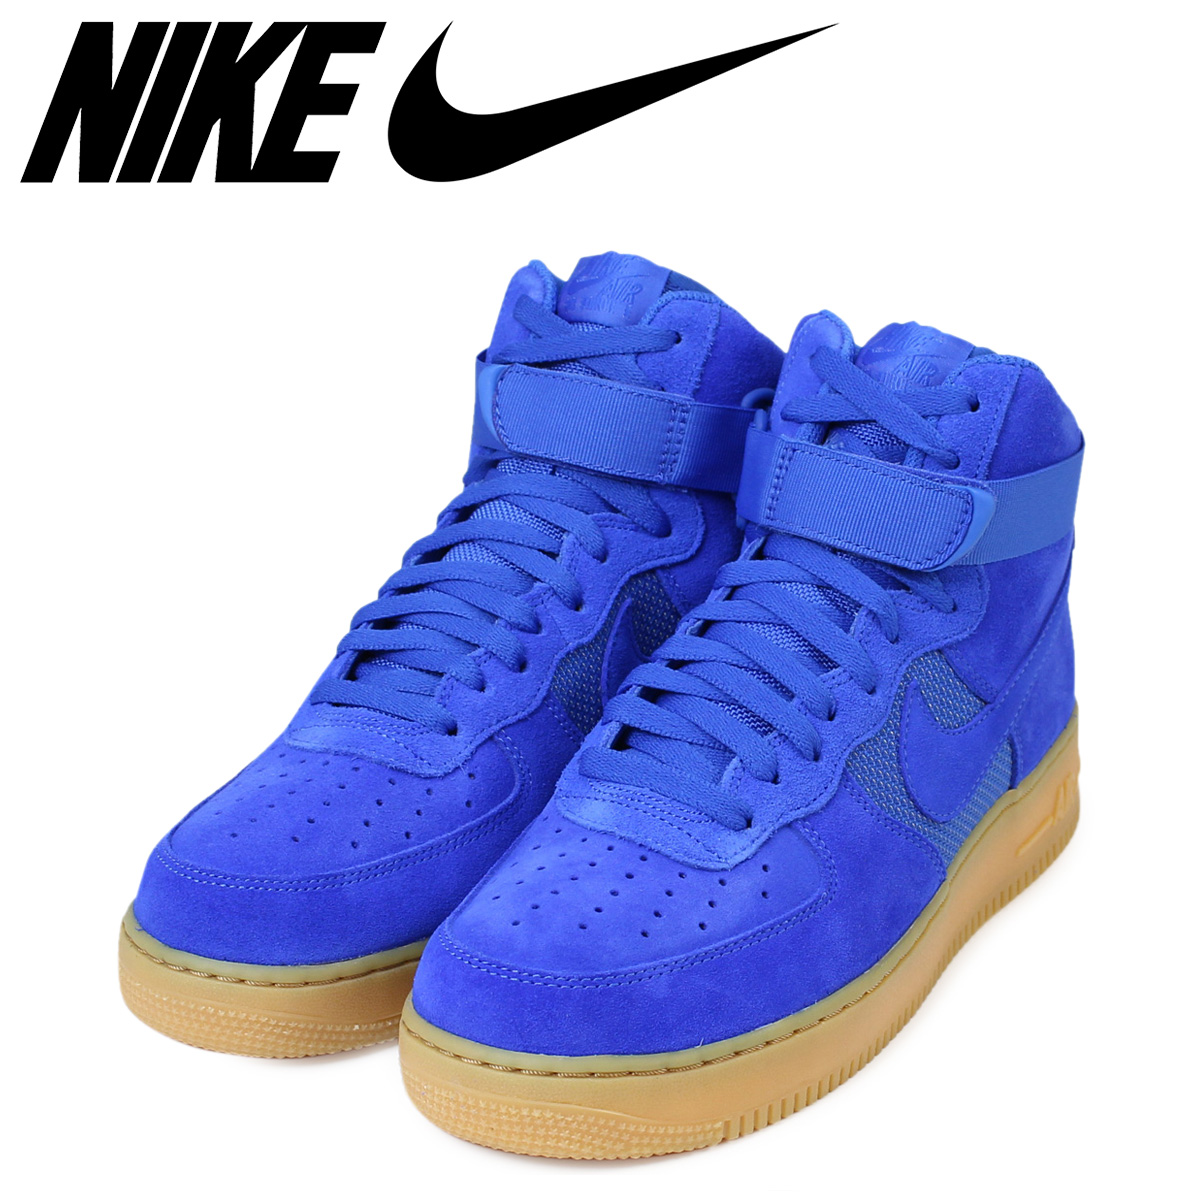 new arrival 76260 5921c nike air force 1 high blue